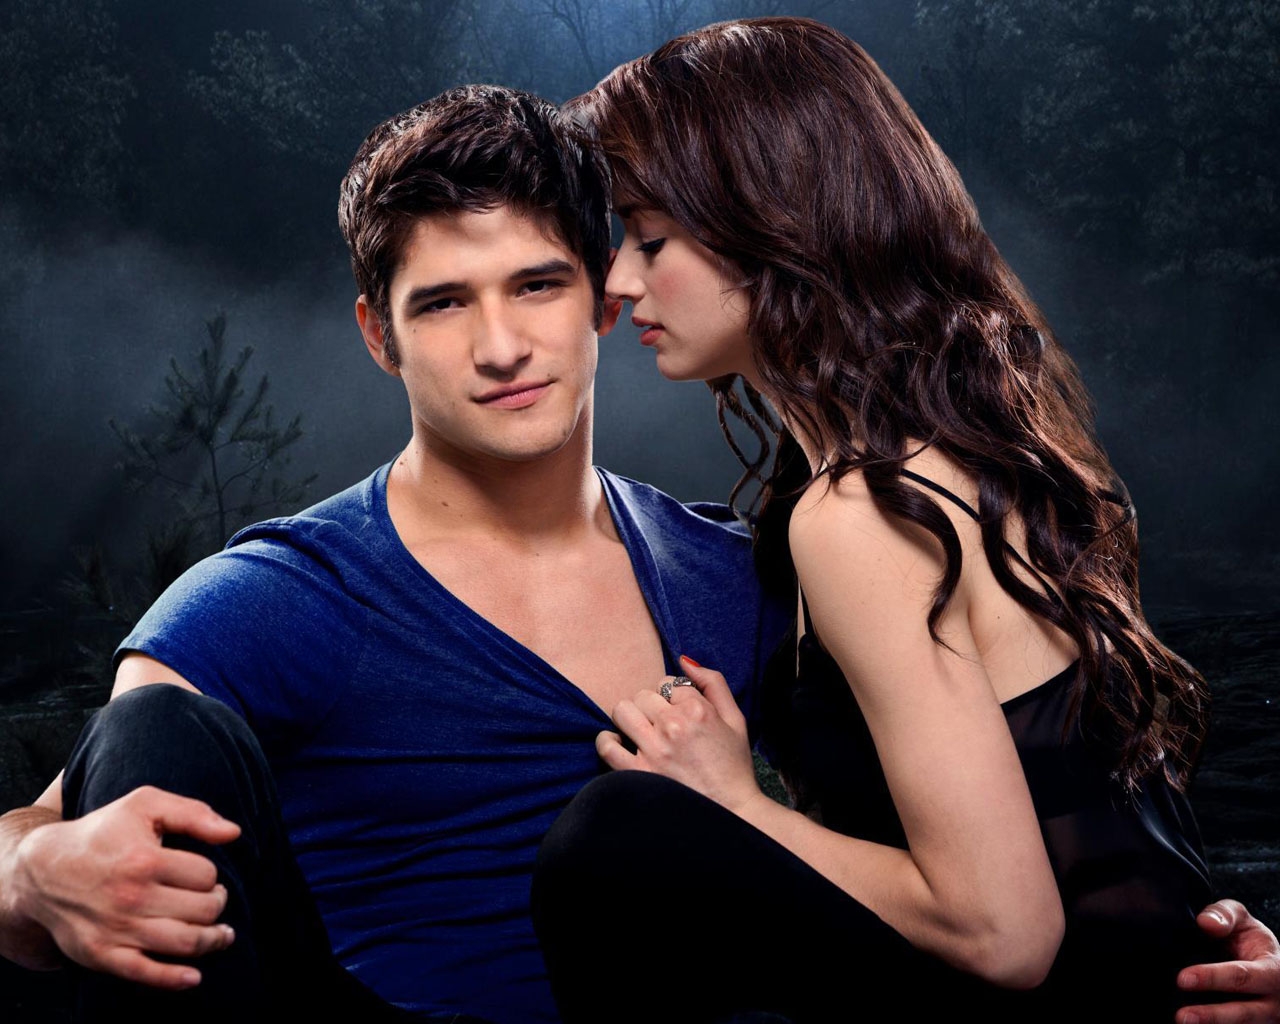 pictures tyler crystal posey - photo #18